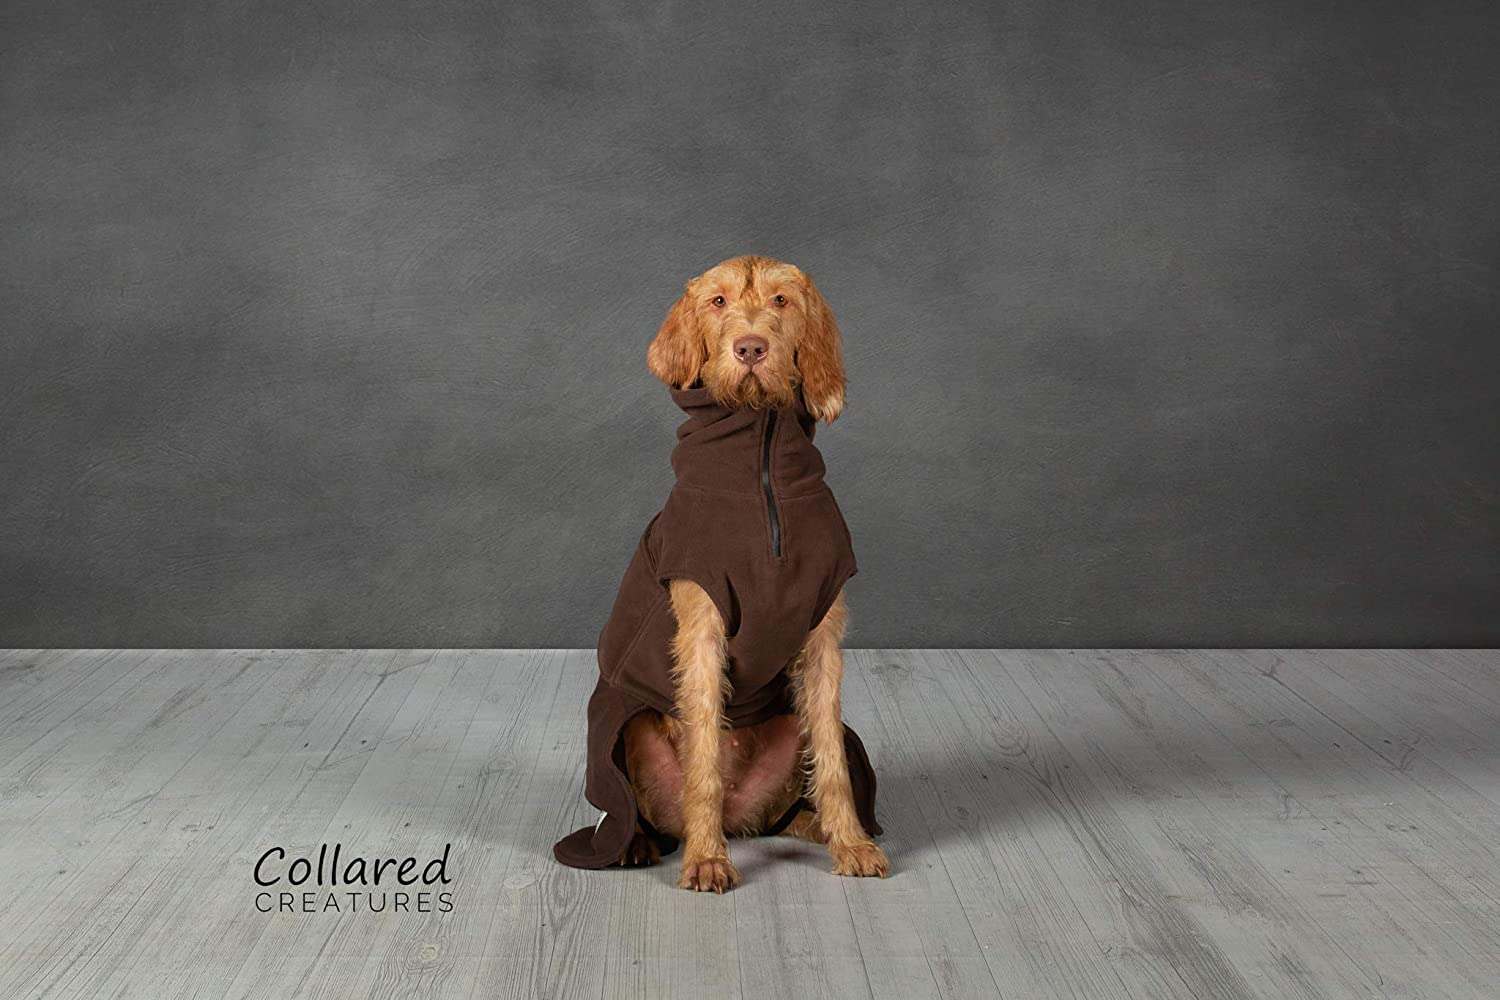 Collared Creatures Dog Drying Coat, TowlingMicrofiber Lined Fleece Jacket Brown (available sizes XS, S, M, L, L XLong, XL, XL XLong) XLarge 59cm